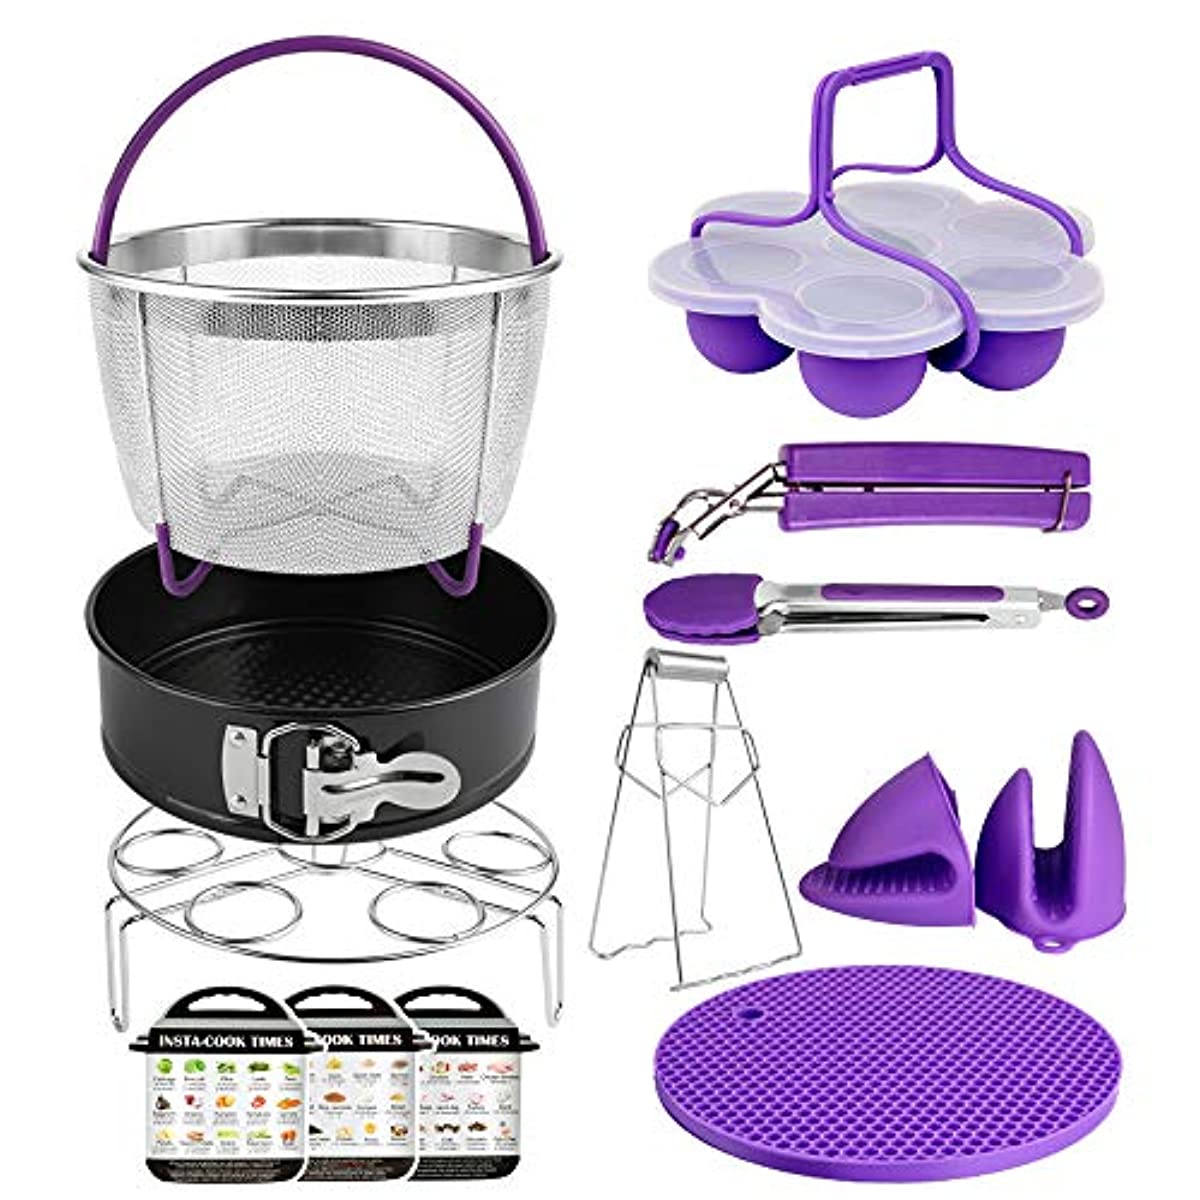 Details about 13 Piece Set for Instant Pot Accessories 6,8 Qt Purple  Kitchen Cooking Tools